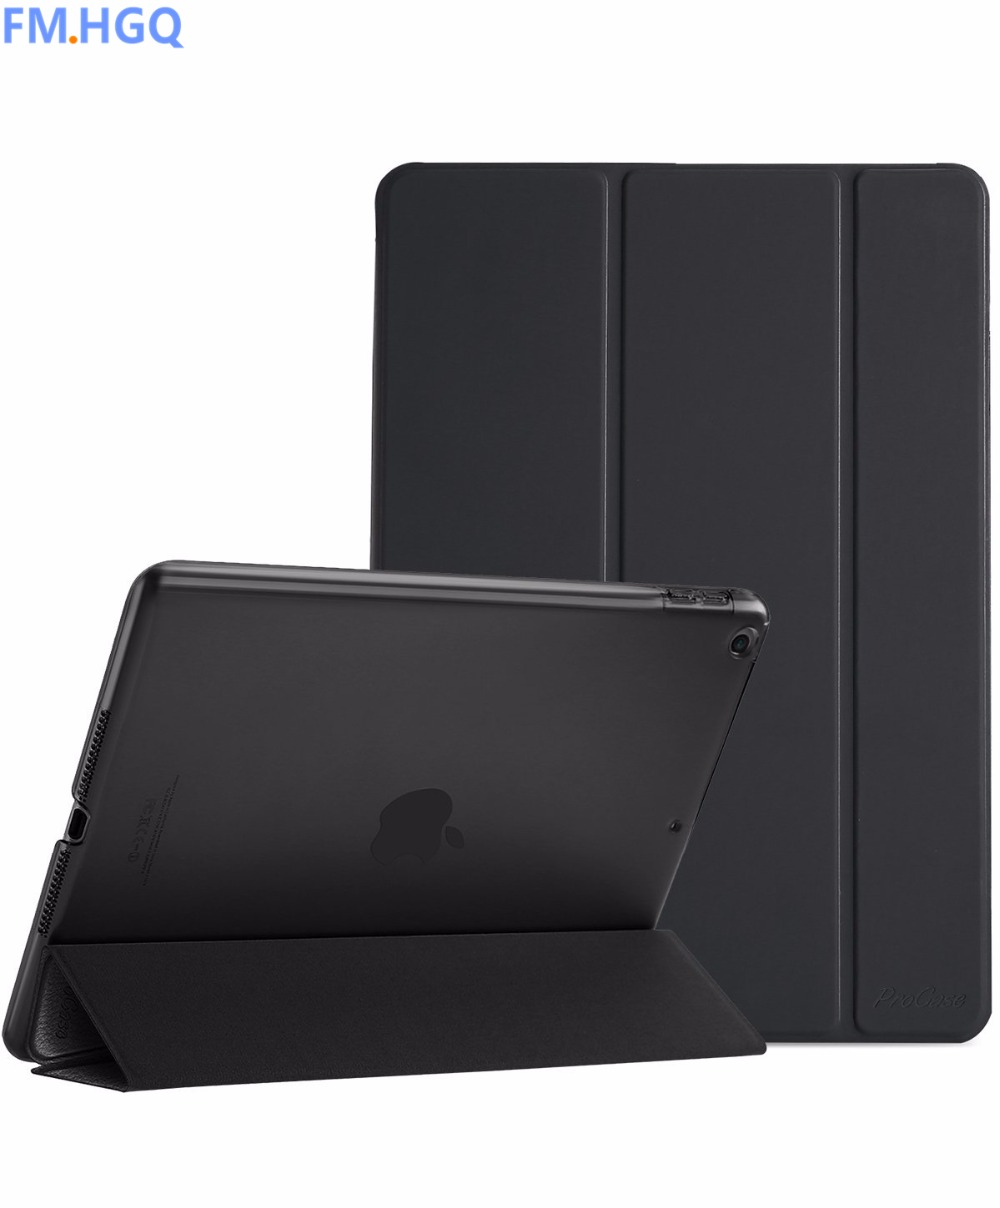 For New iPad 9.7 Case 2017 Ultra Slim Lightweight Stand Case with Translucent Frosted Back Smart Cover for 2017 New iPad 9.7Inch back shell for new ipad 9 7 2017 genuine leather cover case for new ipad 9 7 inch a1822 a1823 ultra thin slim case protector